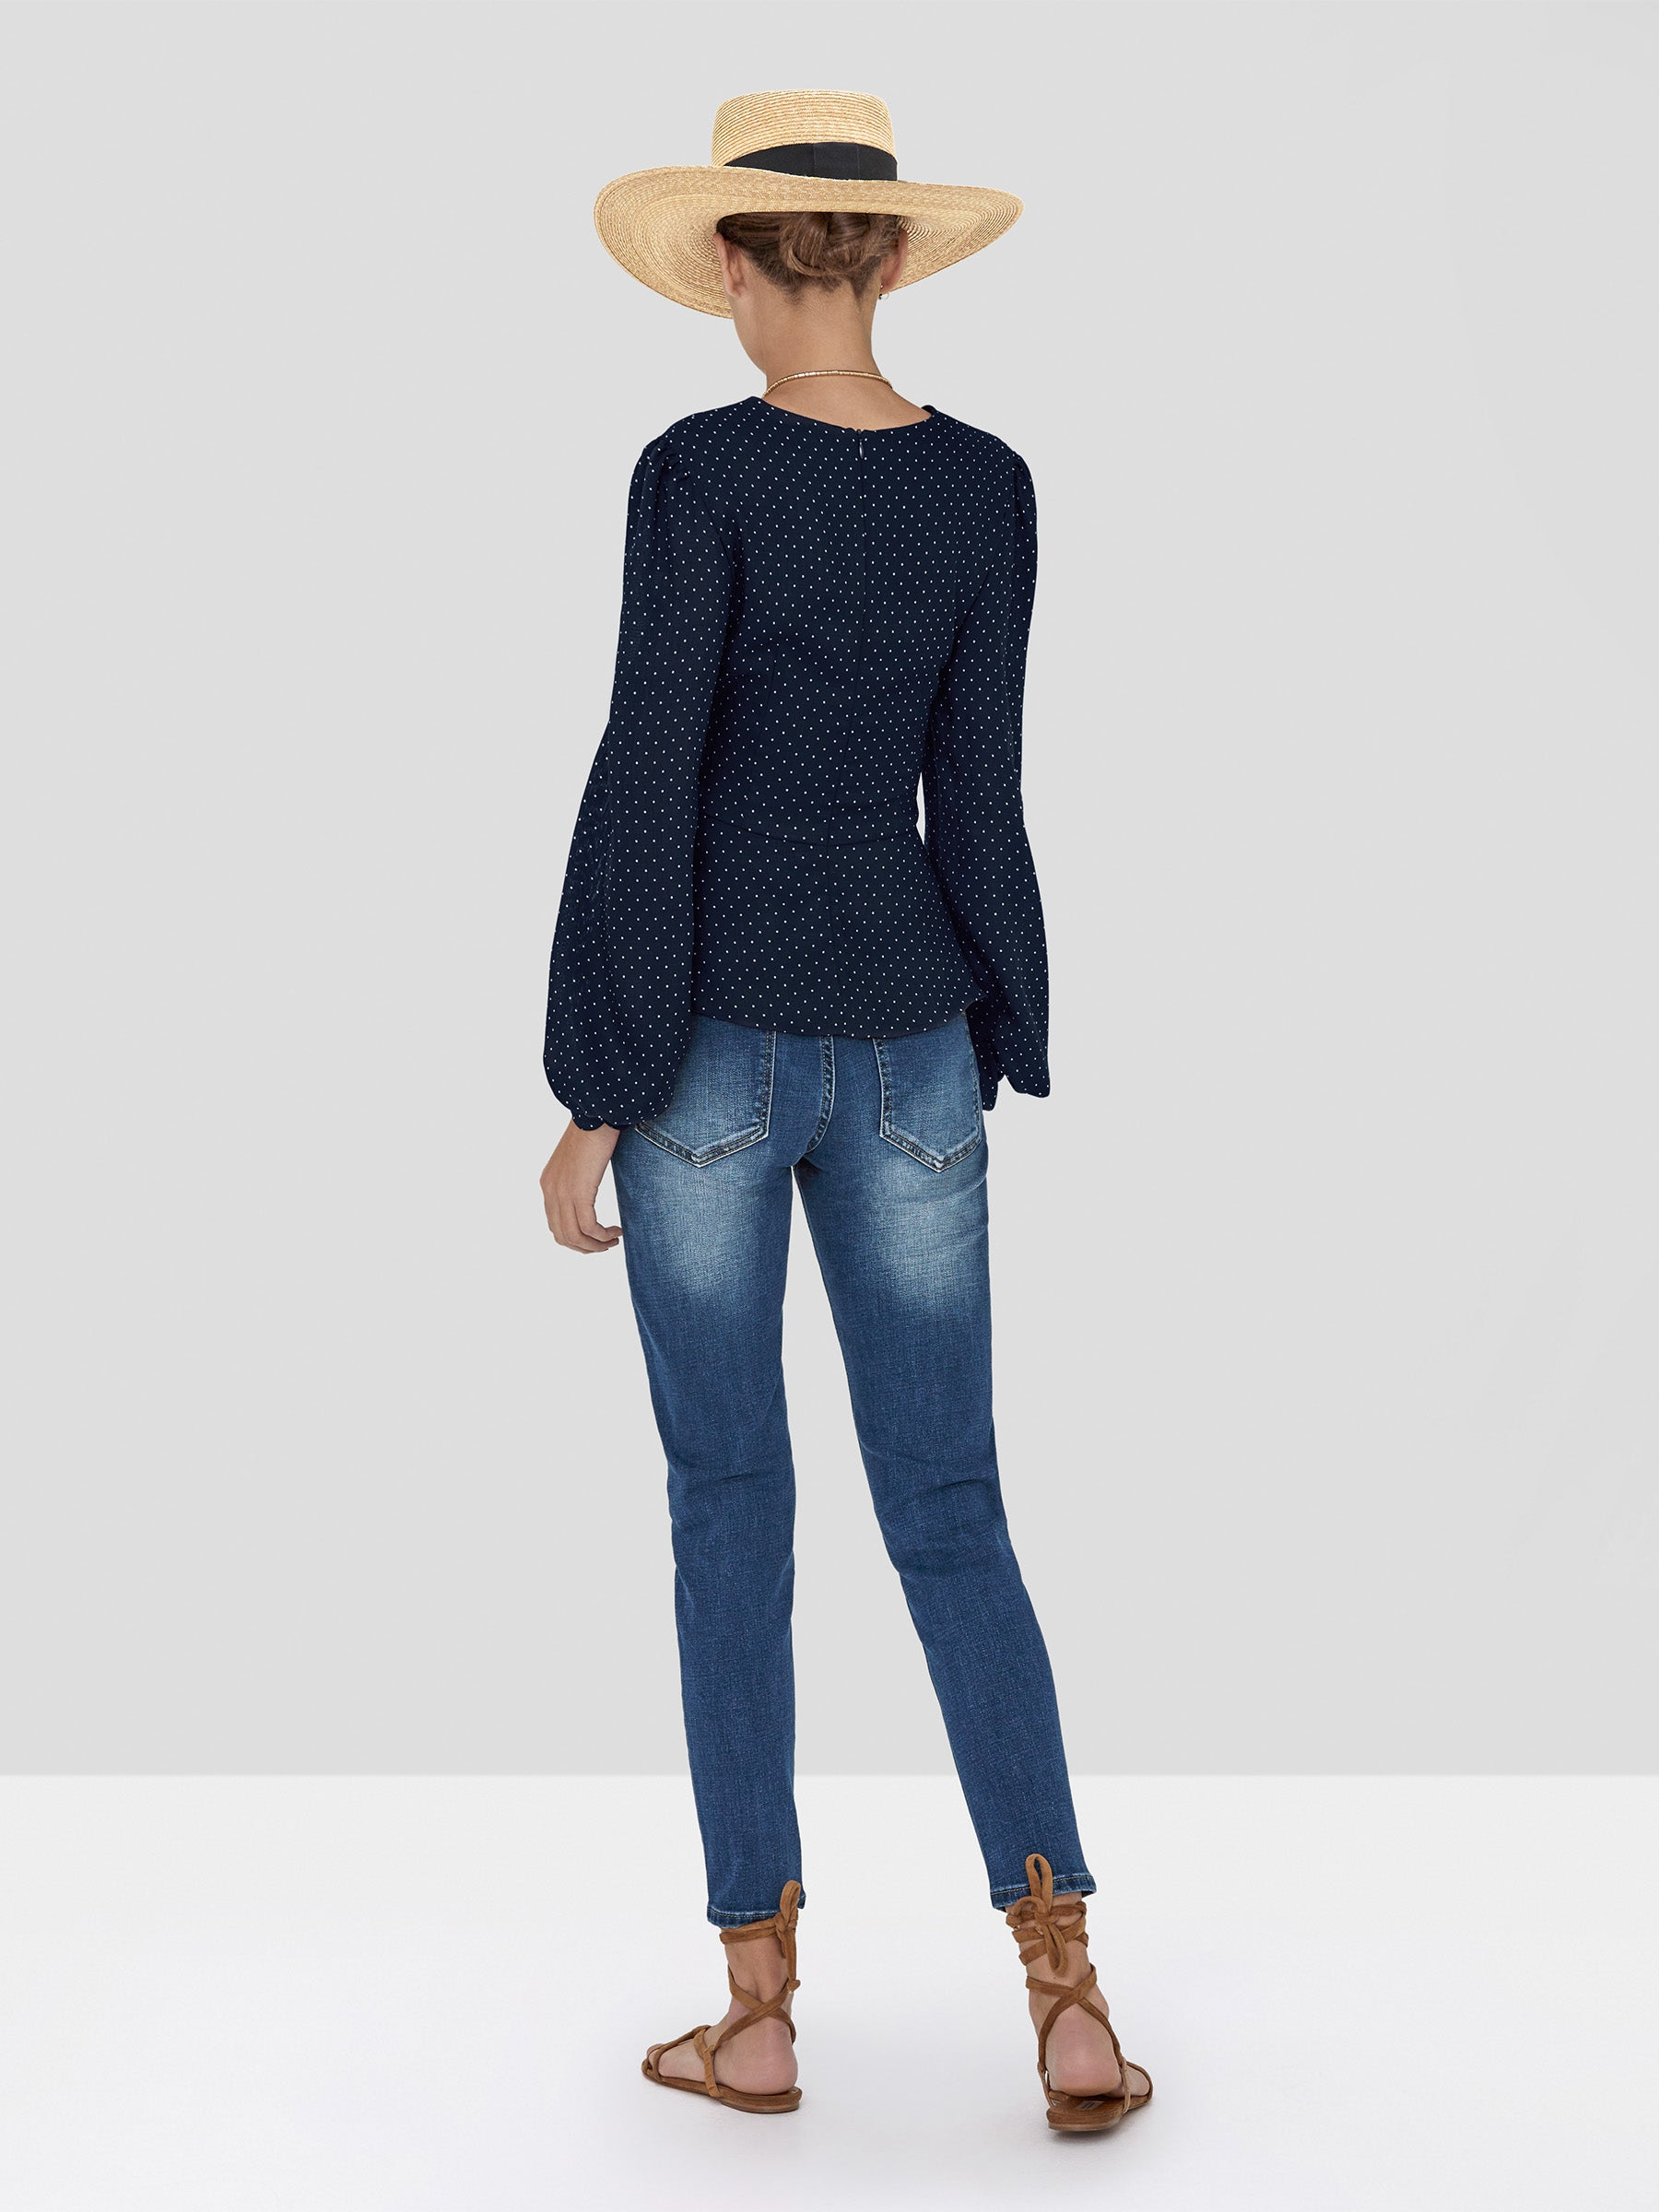 Alexis Avani Top in Navy Dot Linen from the Spring Summer 2020 Collection - Rear View